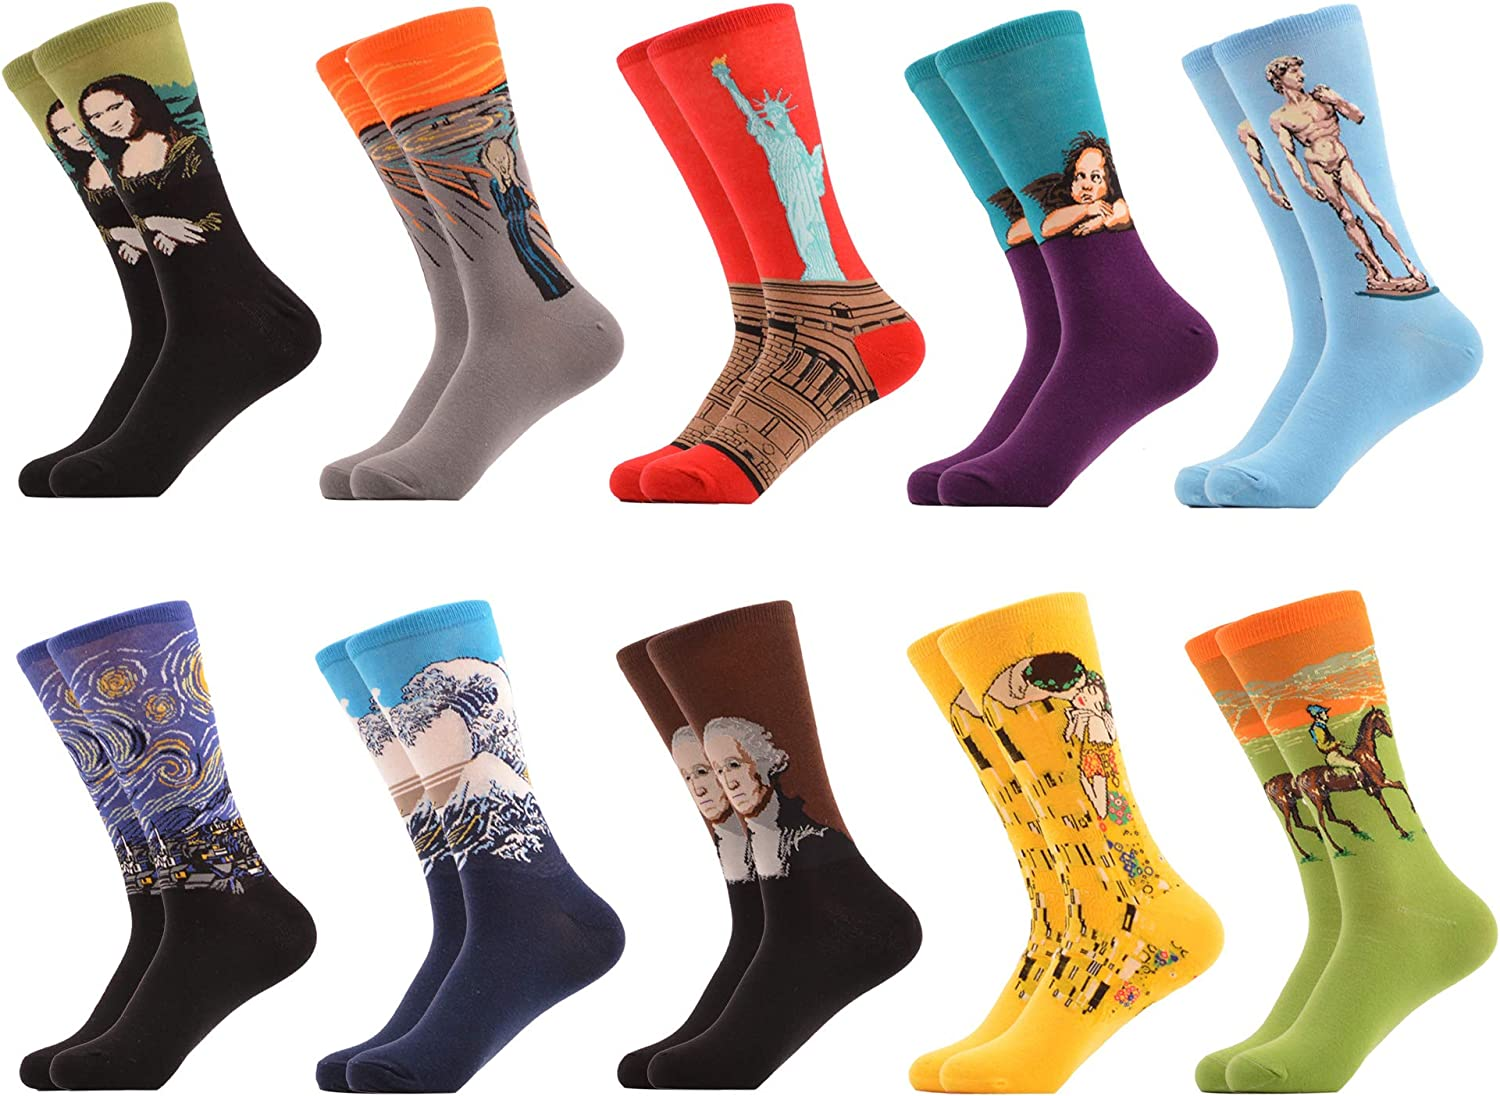 WeciBor Men's Dress Crazy Colorful Novelty Funny Casual Combed Cotton Crew Socks Pack